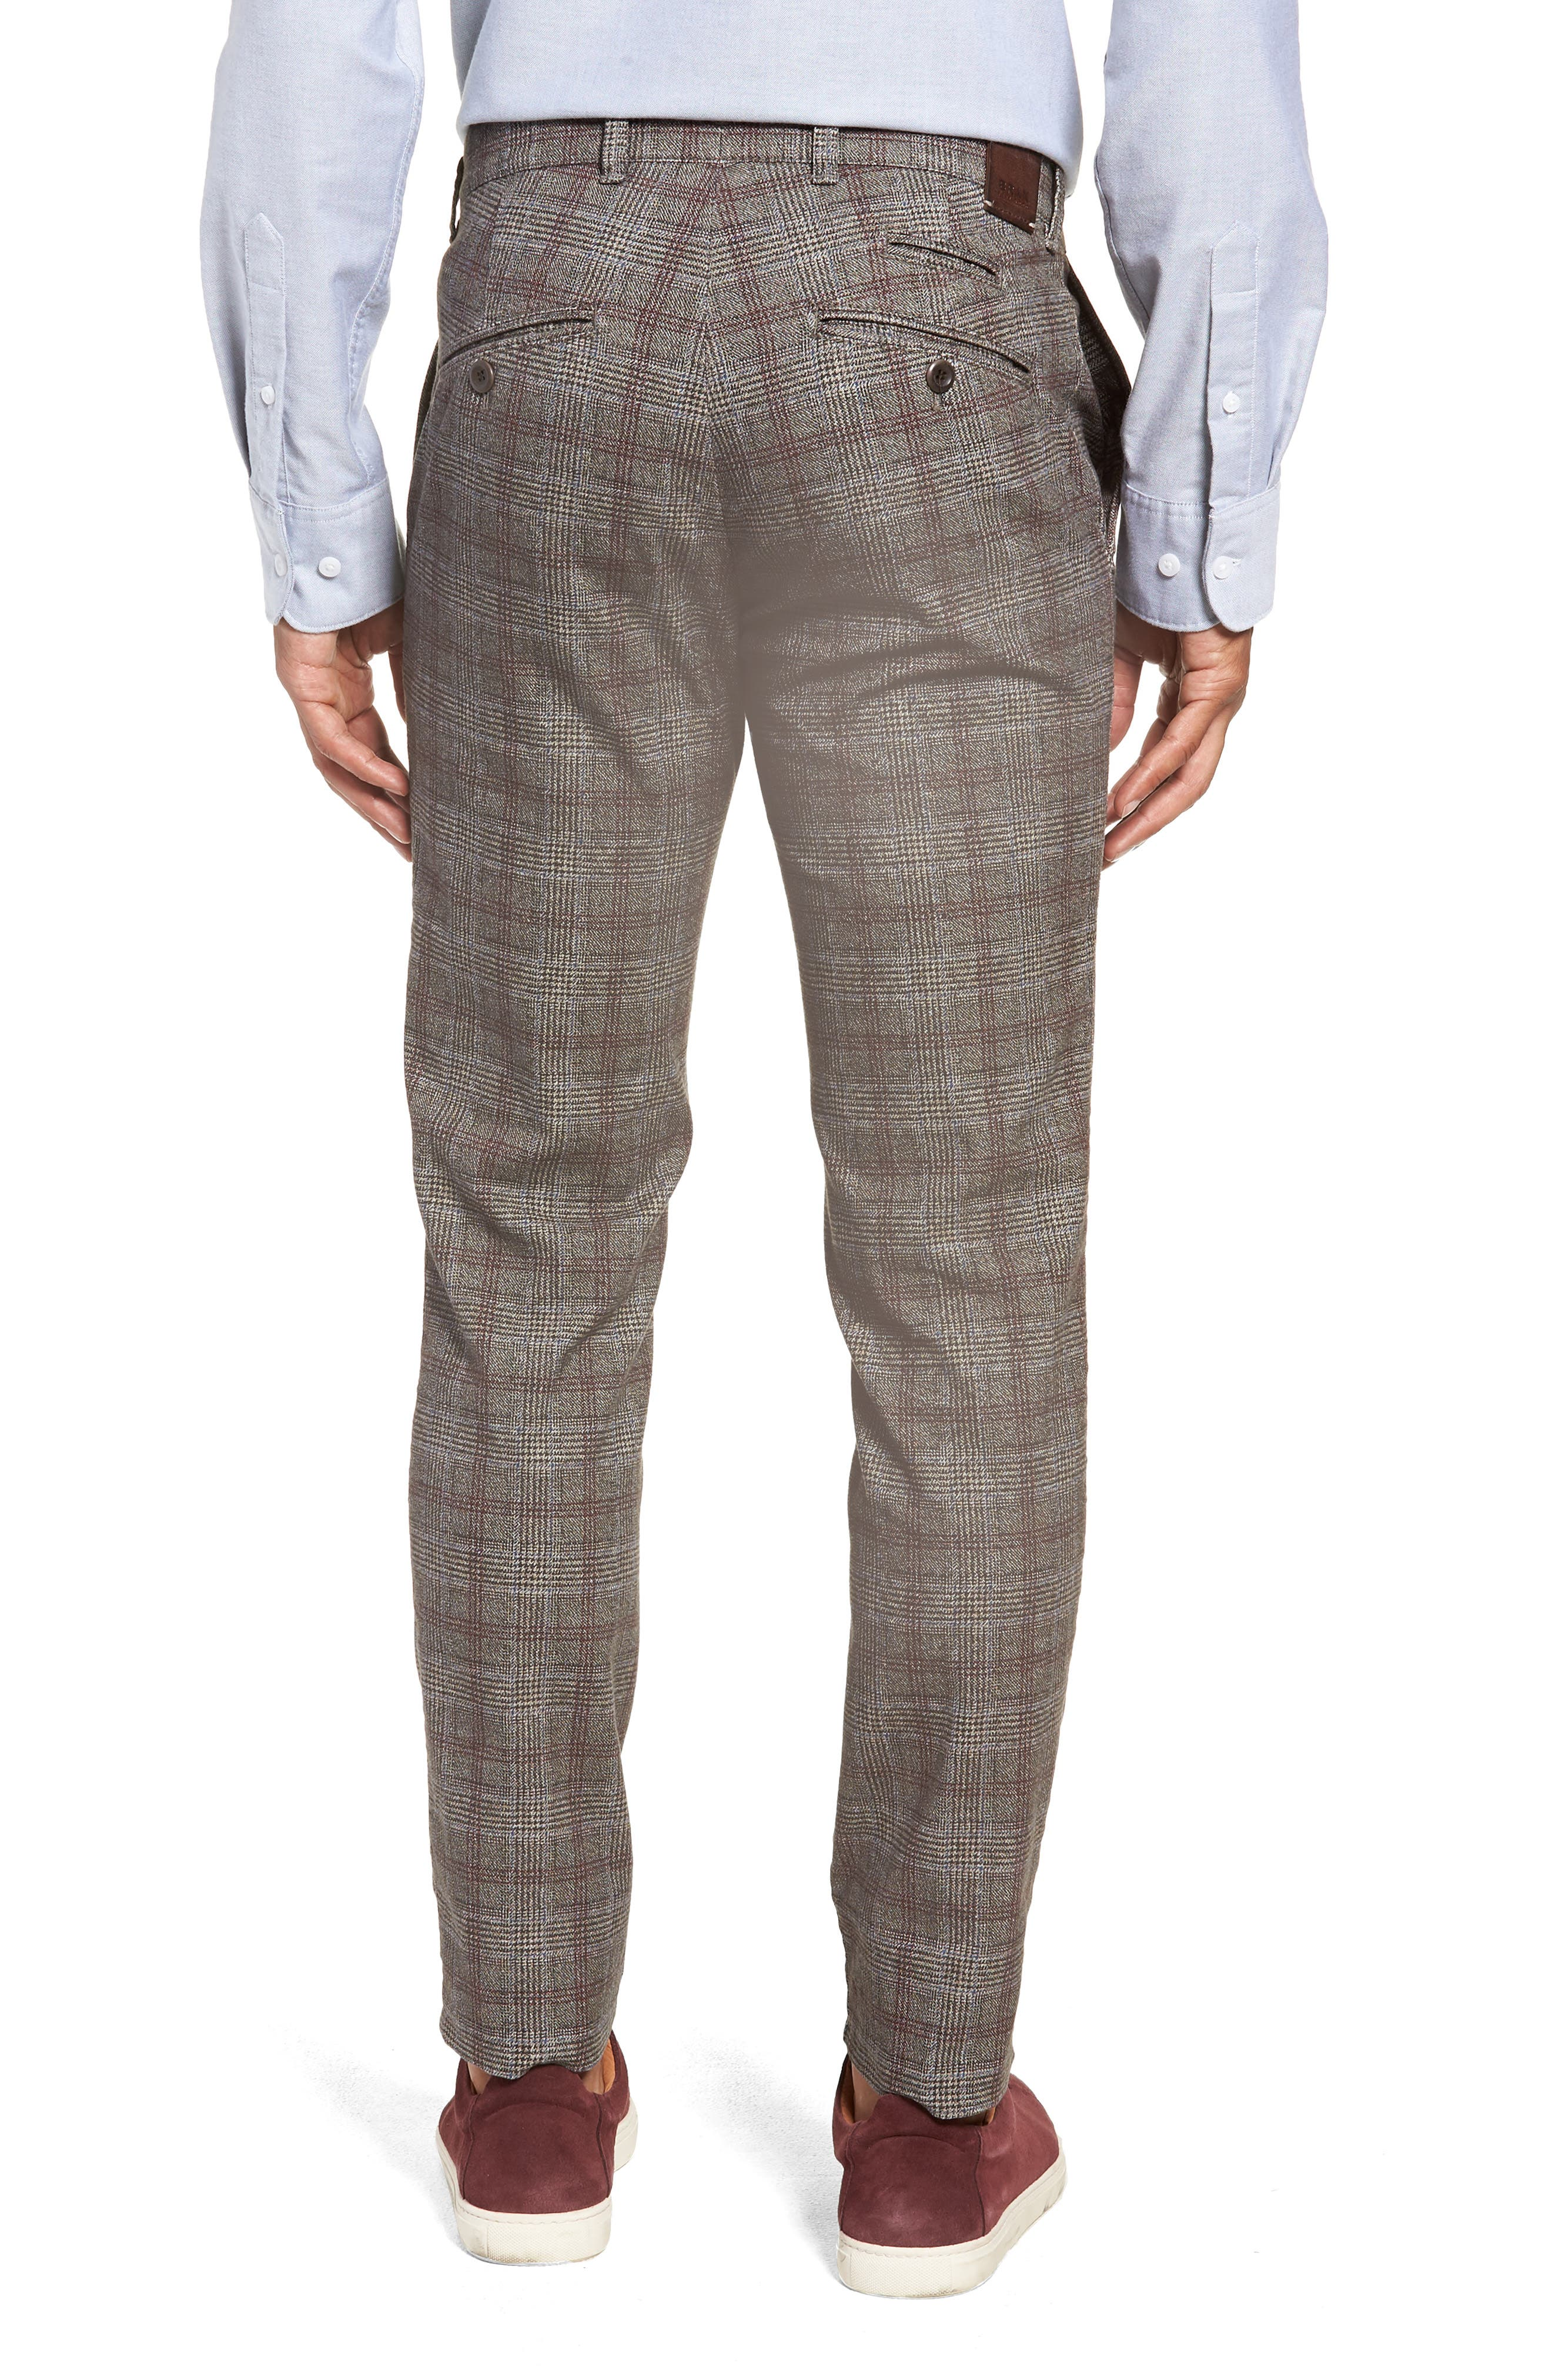 Woolook Slim Fit Check Flat Front Pants,                             Alternate thumbnail 2, color,                             BEIGE